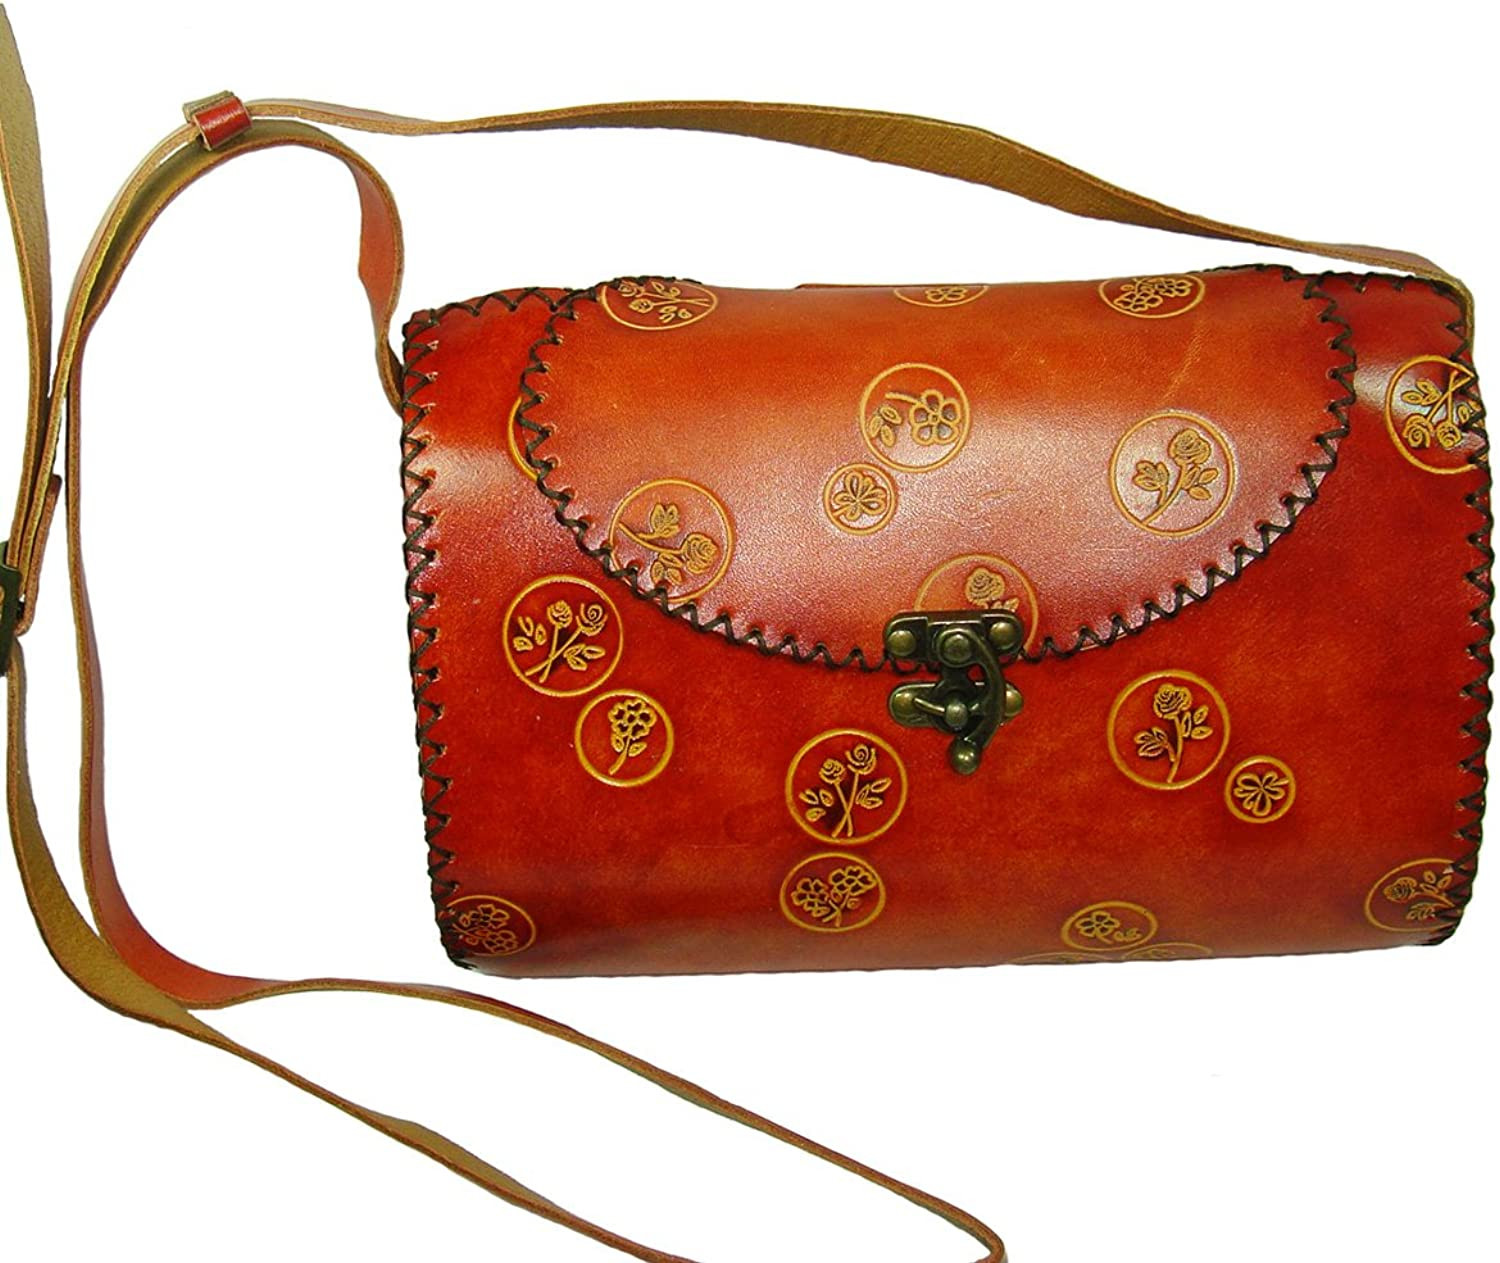 Genuine Leather Shoulder Bag,an Oval Shape Design,Beautiful and Unique,Brown.